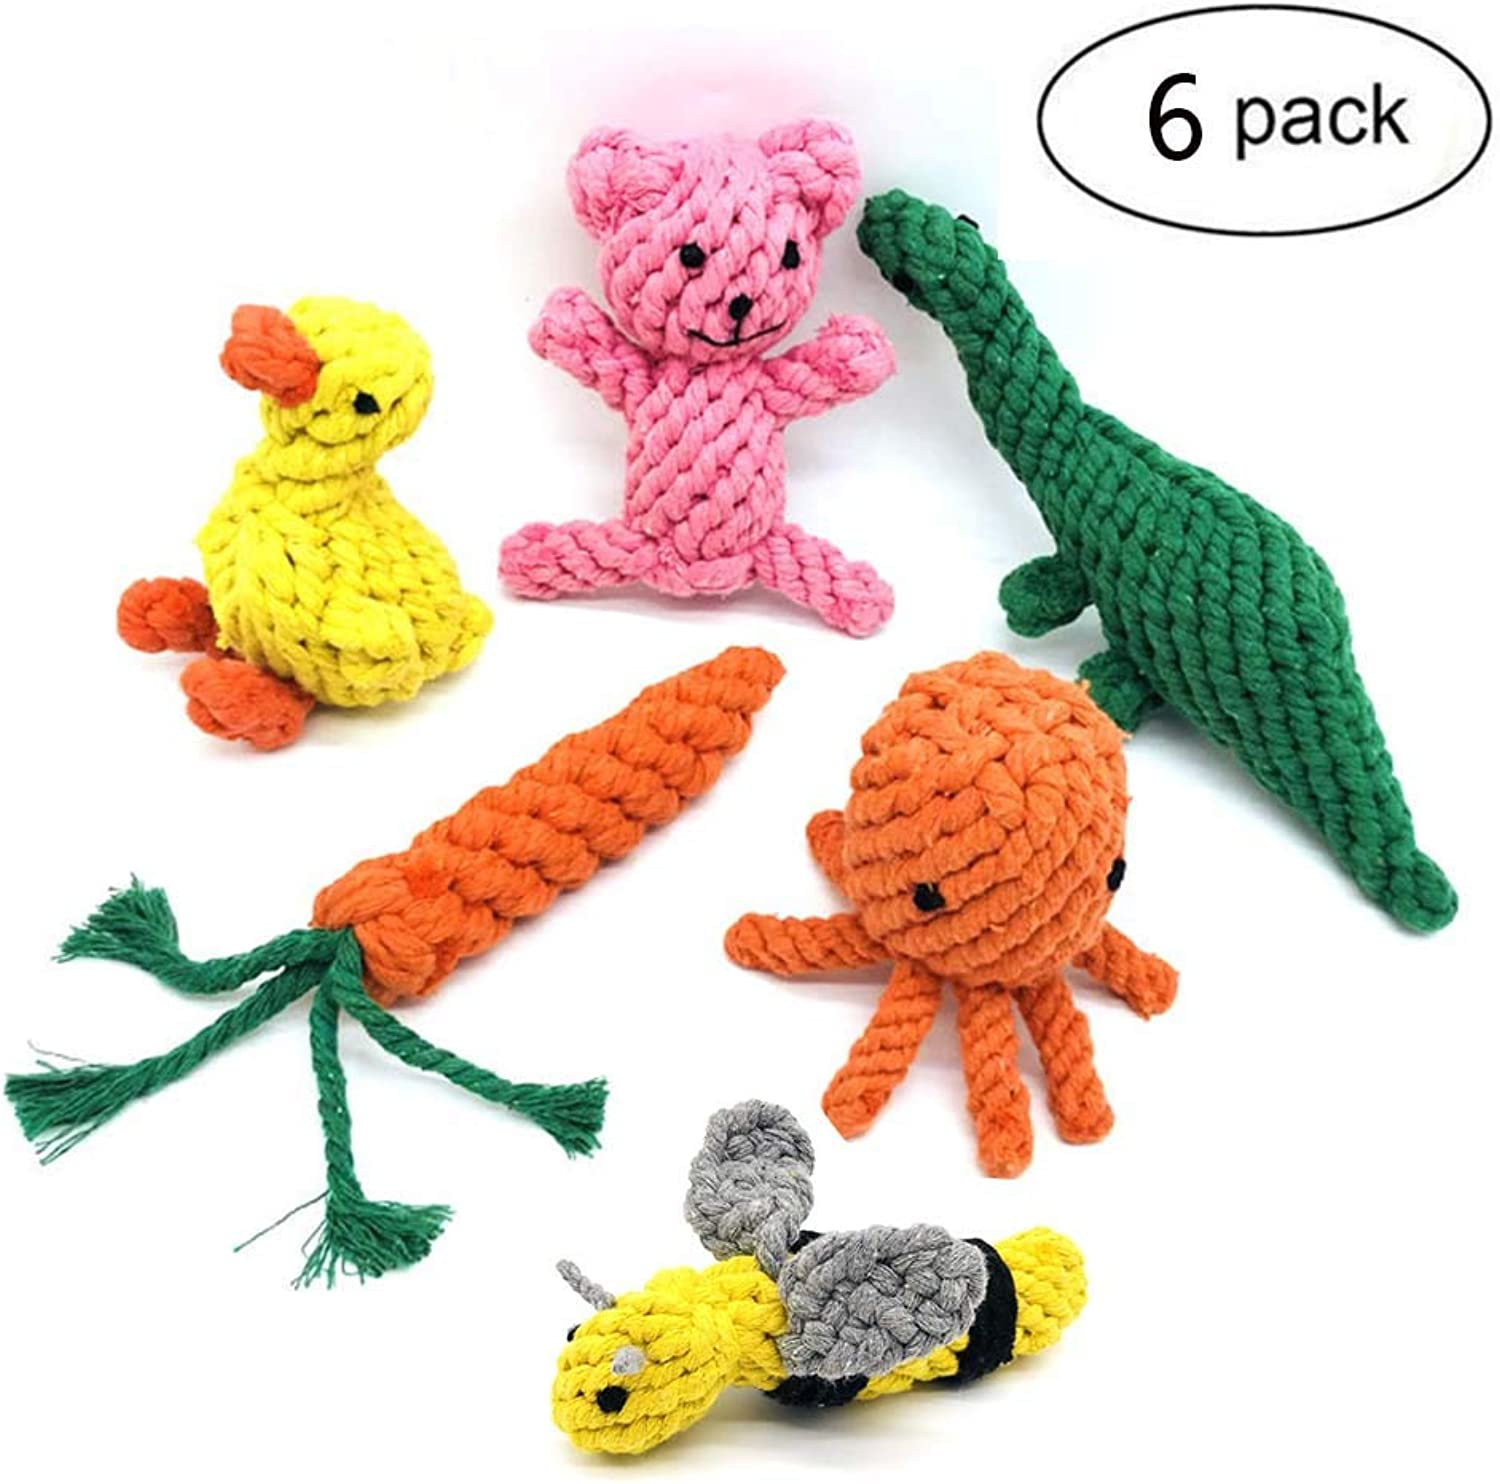 Pet Molarst Toy HandWoven Dog Chew Toy Cotton Rope Toy Bite Chewer Training Clean Teeth Interactive Bee Bear Octopus Dinosaur Duck Carred